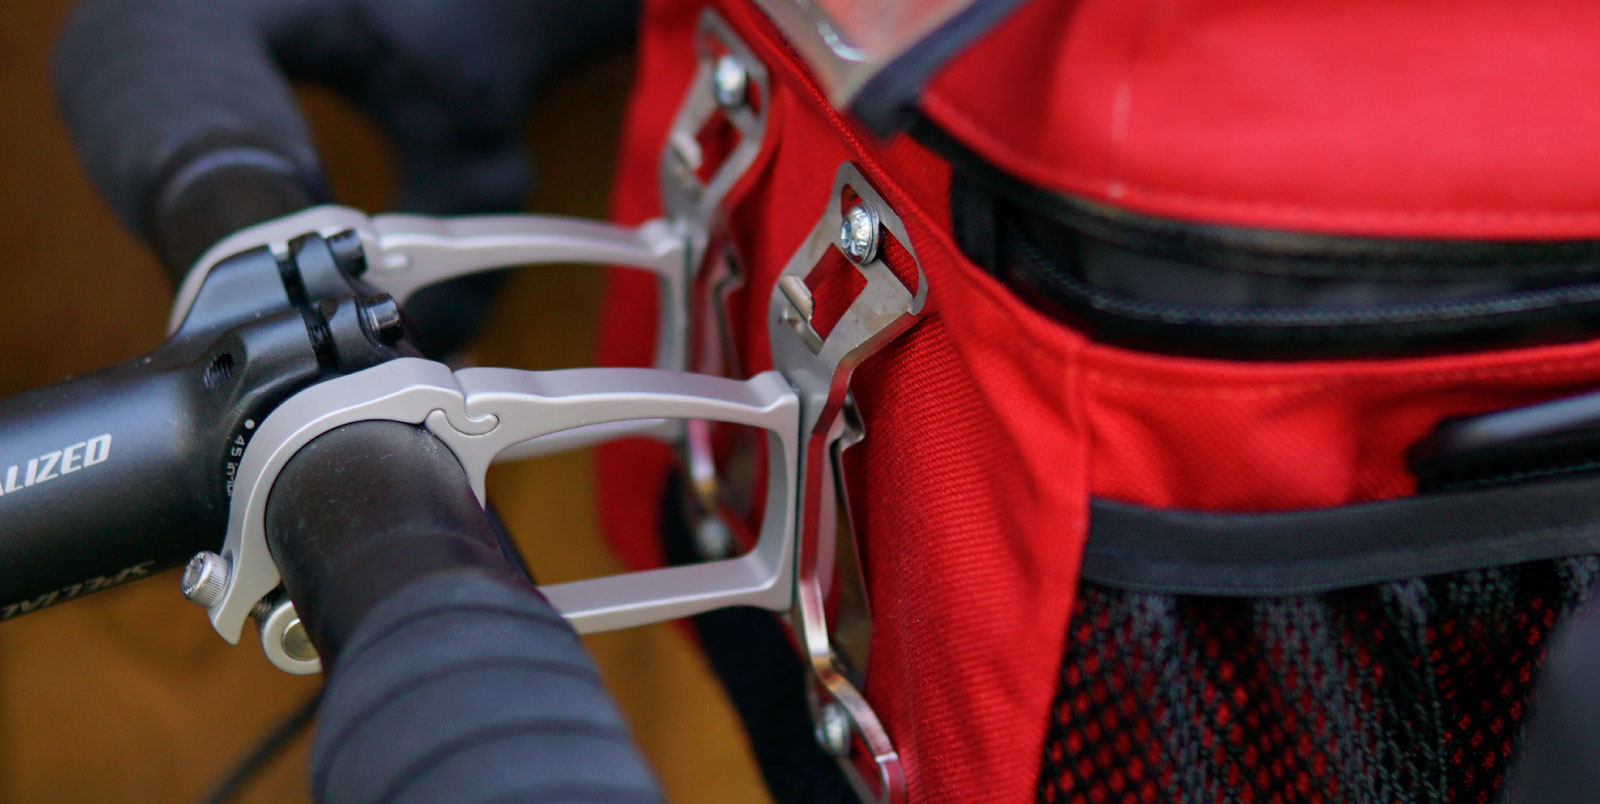 Arkel Handlebar Bag Mounts - Made of light and strong aluminum